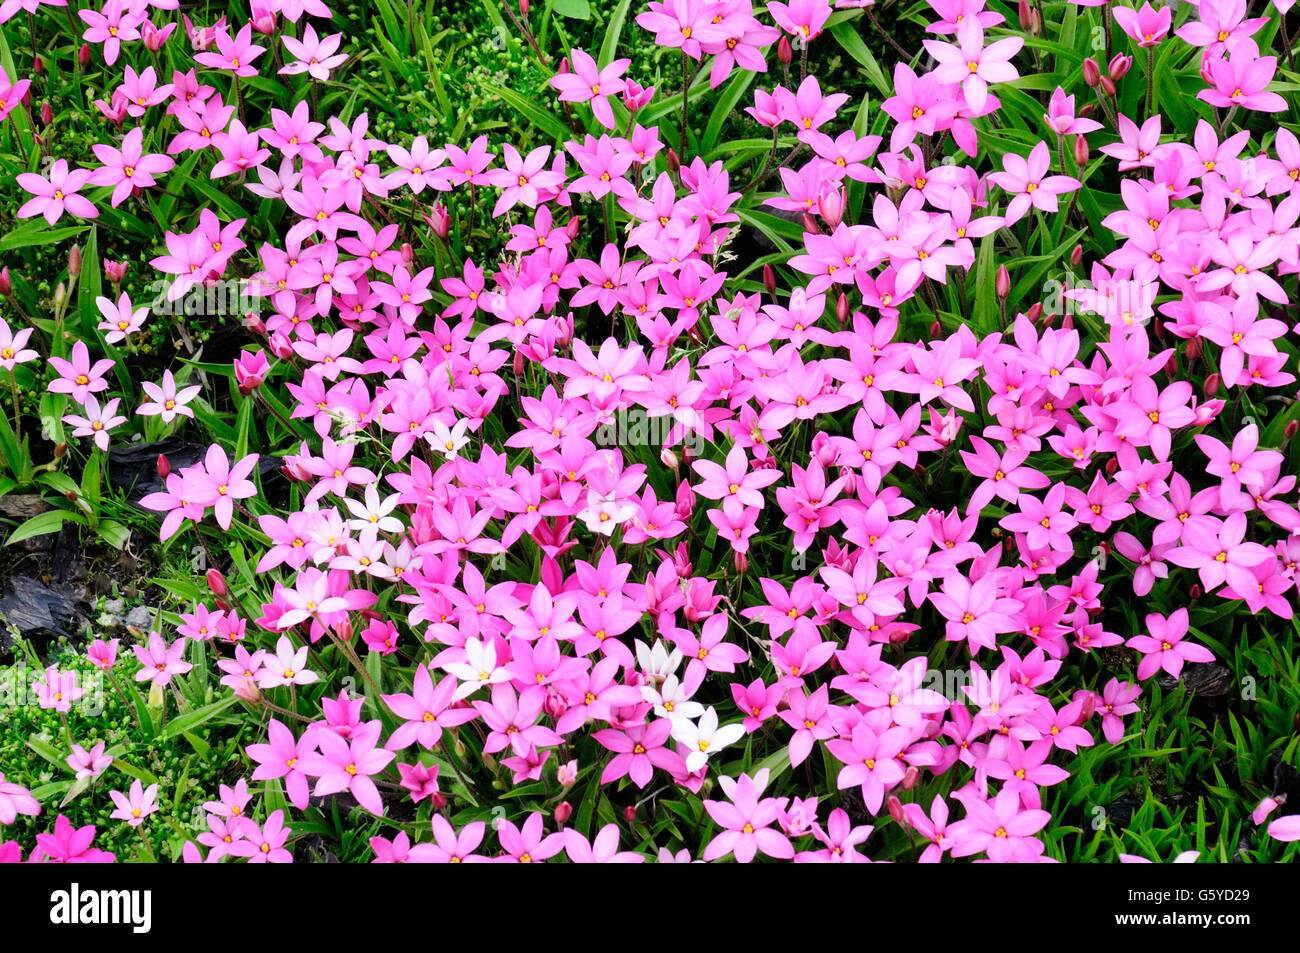 Rhodohypoxis cultivars small pink perennial flowers stock photo rhodohypoxis cultivars small pink perennial flowers mightylinksfo